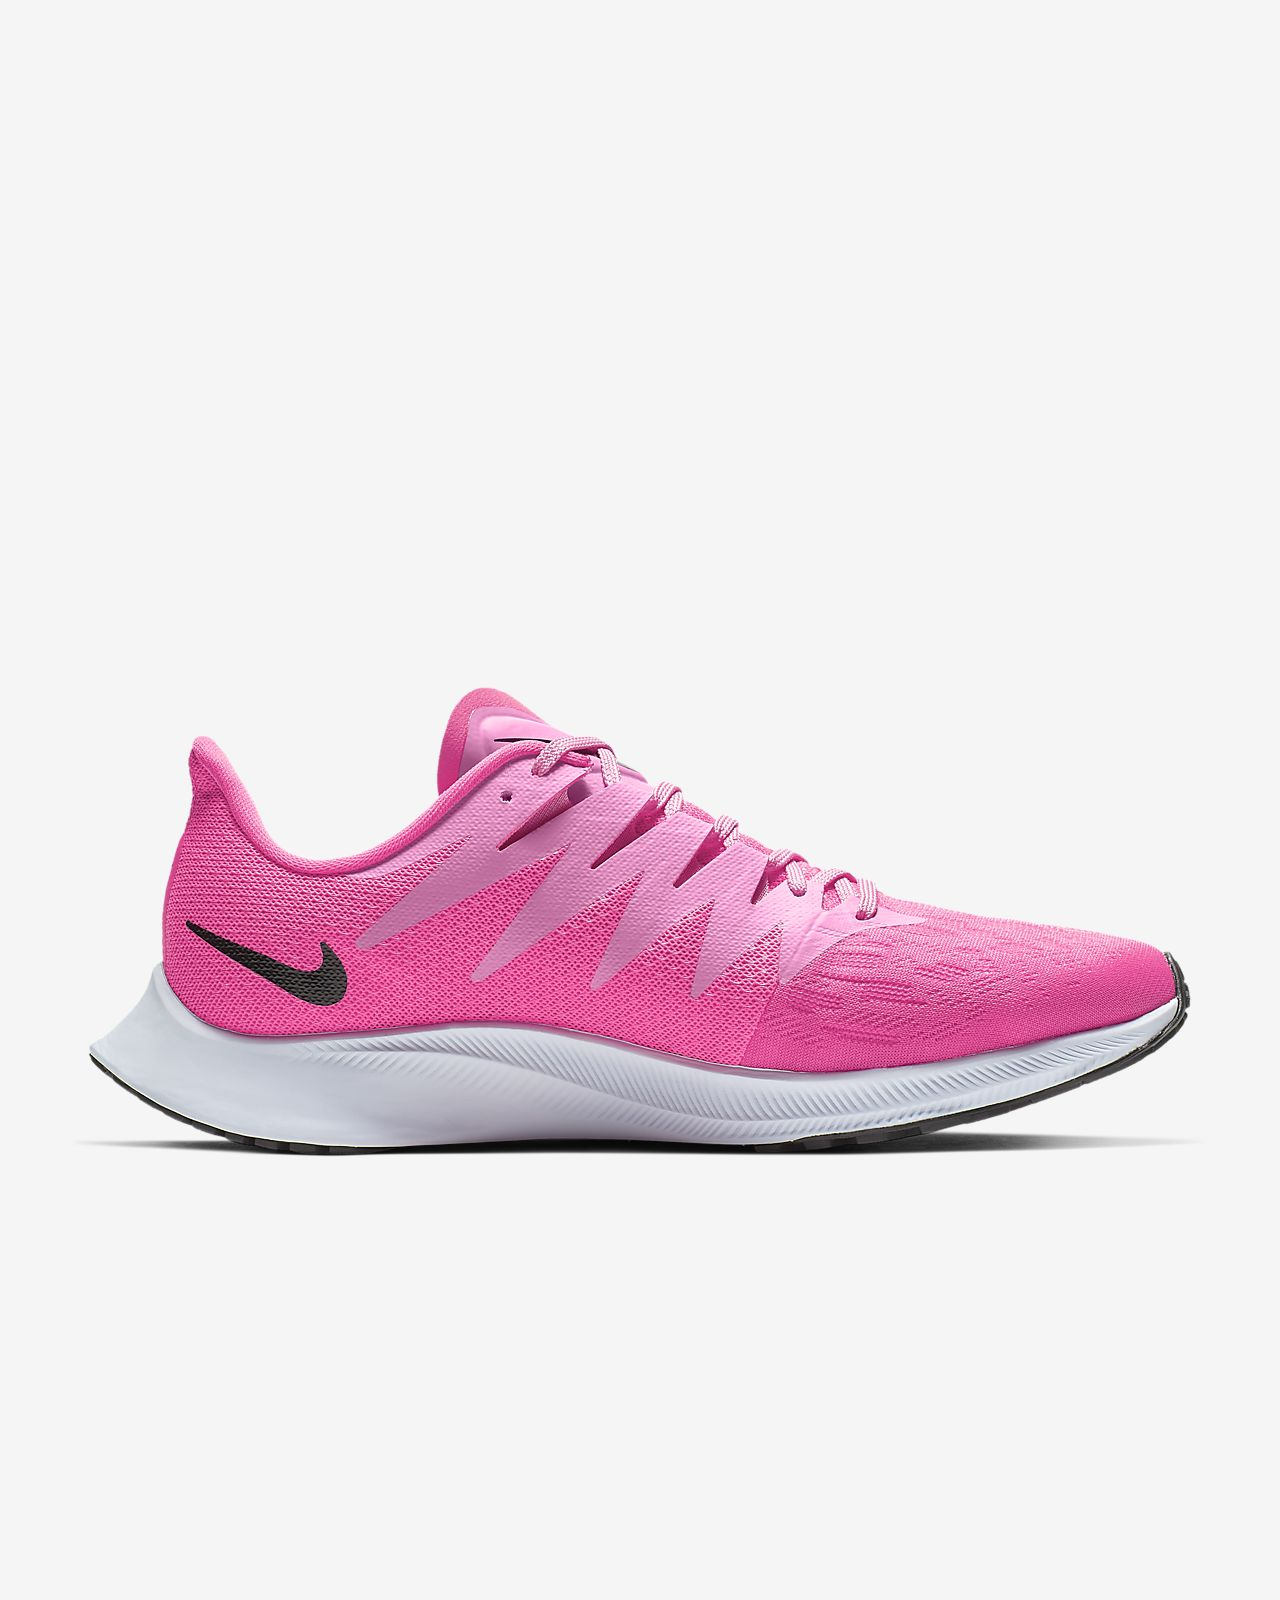 size 40 ec1b7 8863e ... Chaussure de running Nike Zoom Rival Fly pour Femme